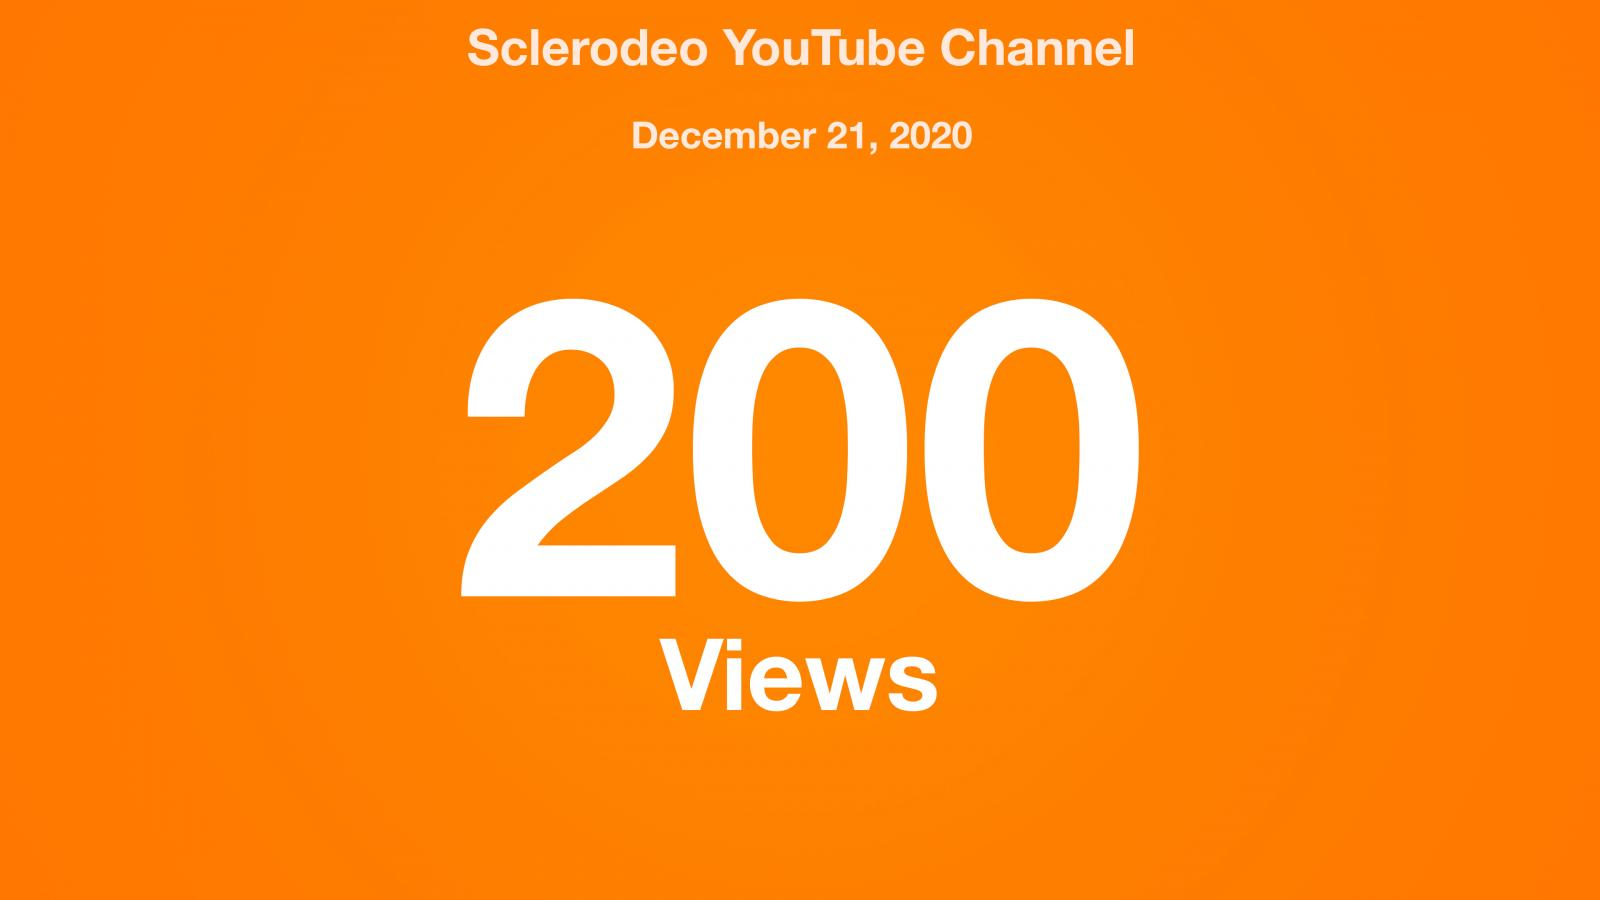 Sclerodeo YouTube Channel, December 21, 2020, 200 Views